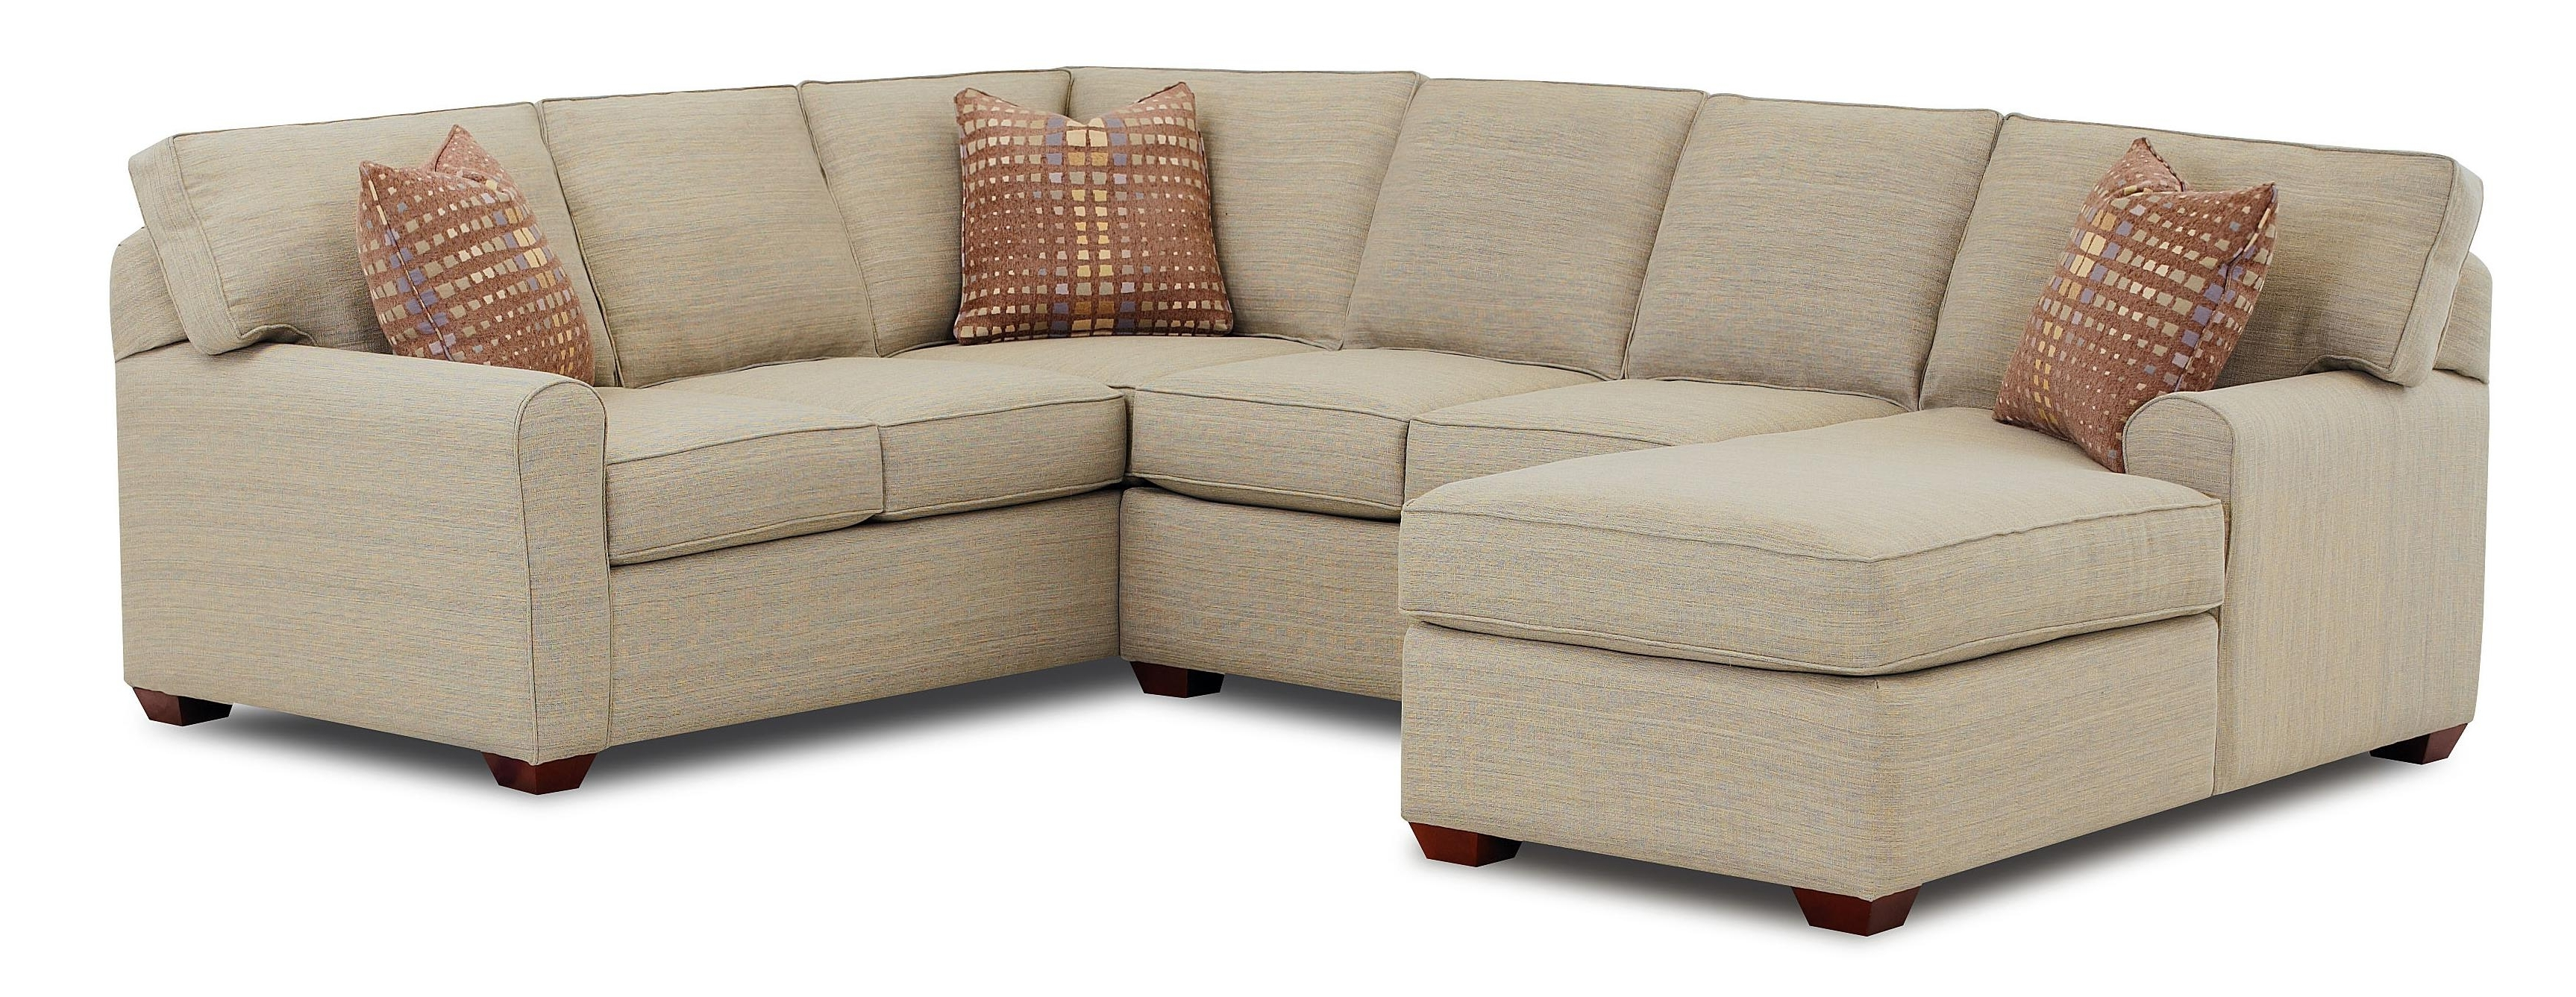 Favorite Sectional Sofas With Chaise Inside Inspirational Sectional Sofa With Chaise Lounge 66 Sofa Design (View 7 of 20)